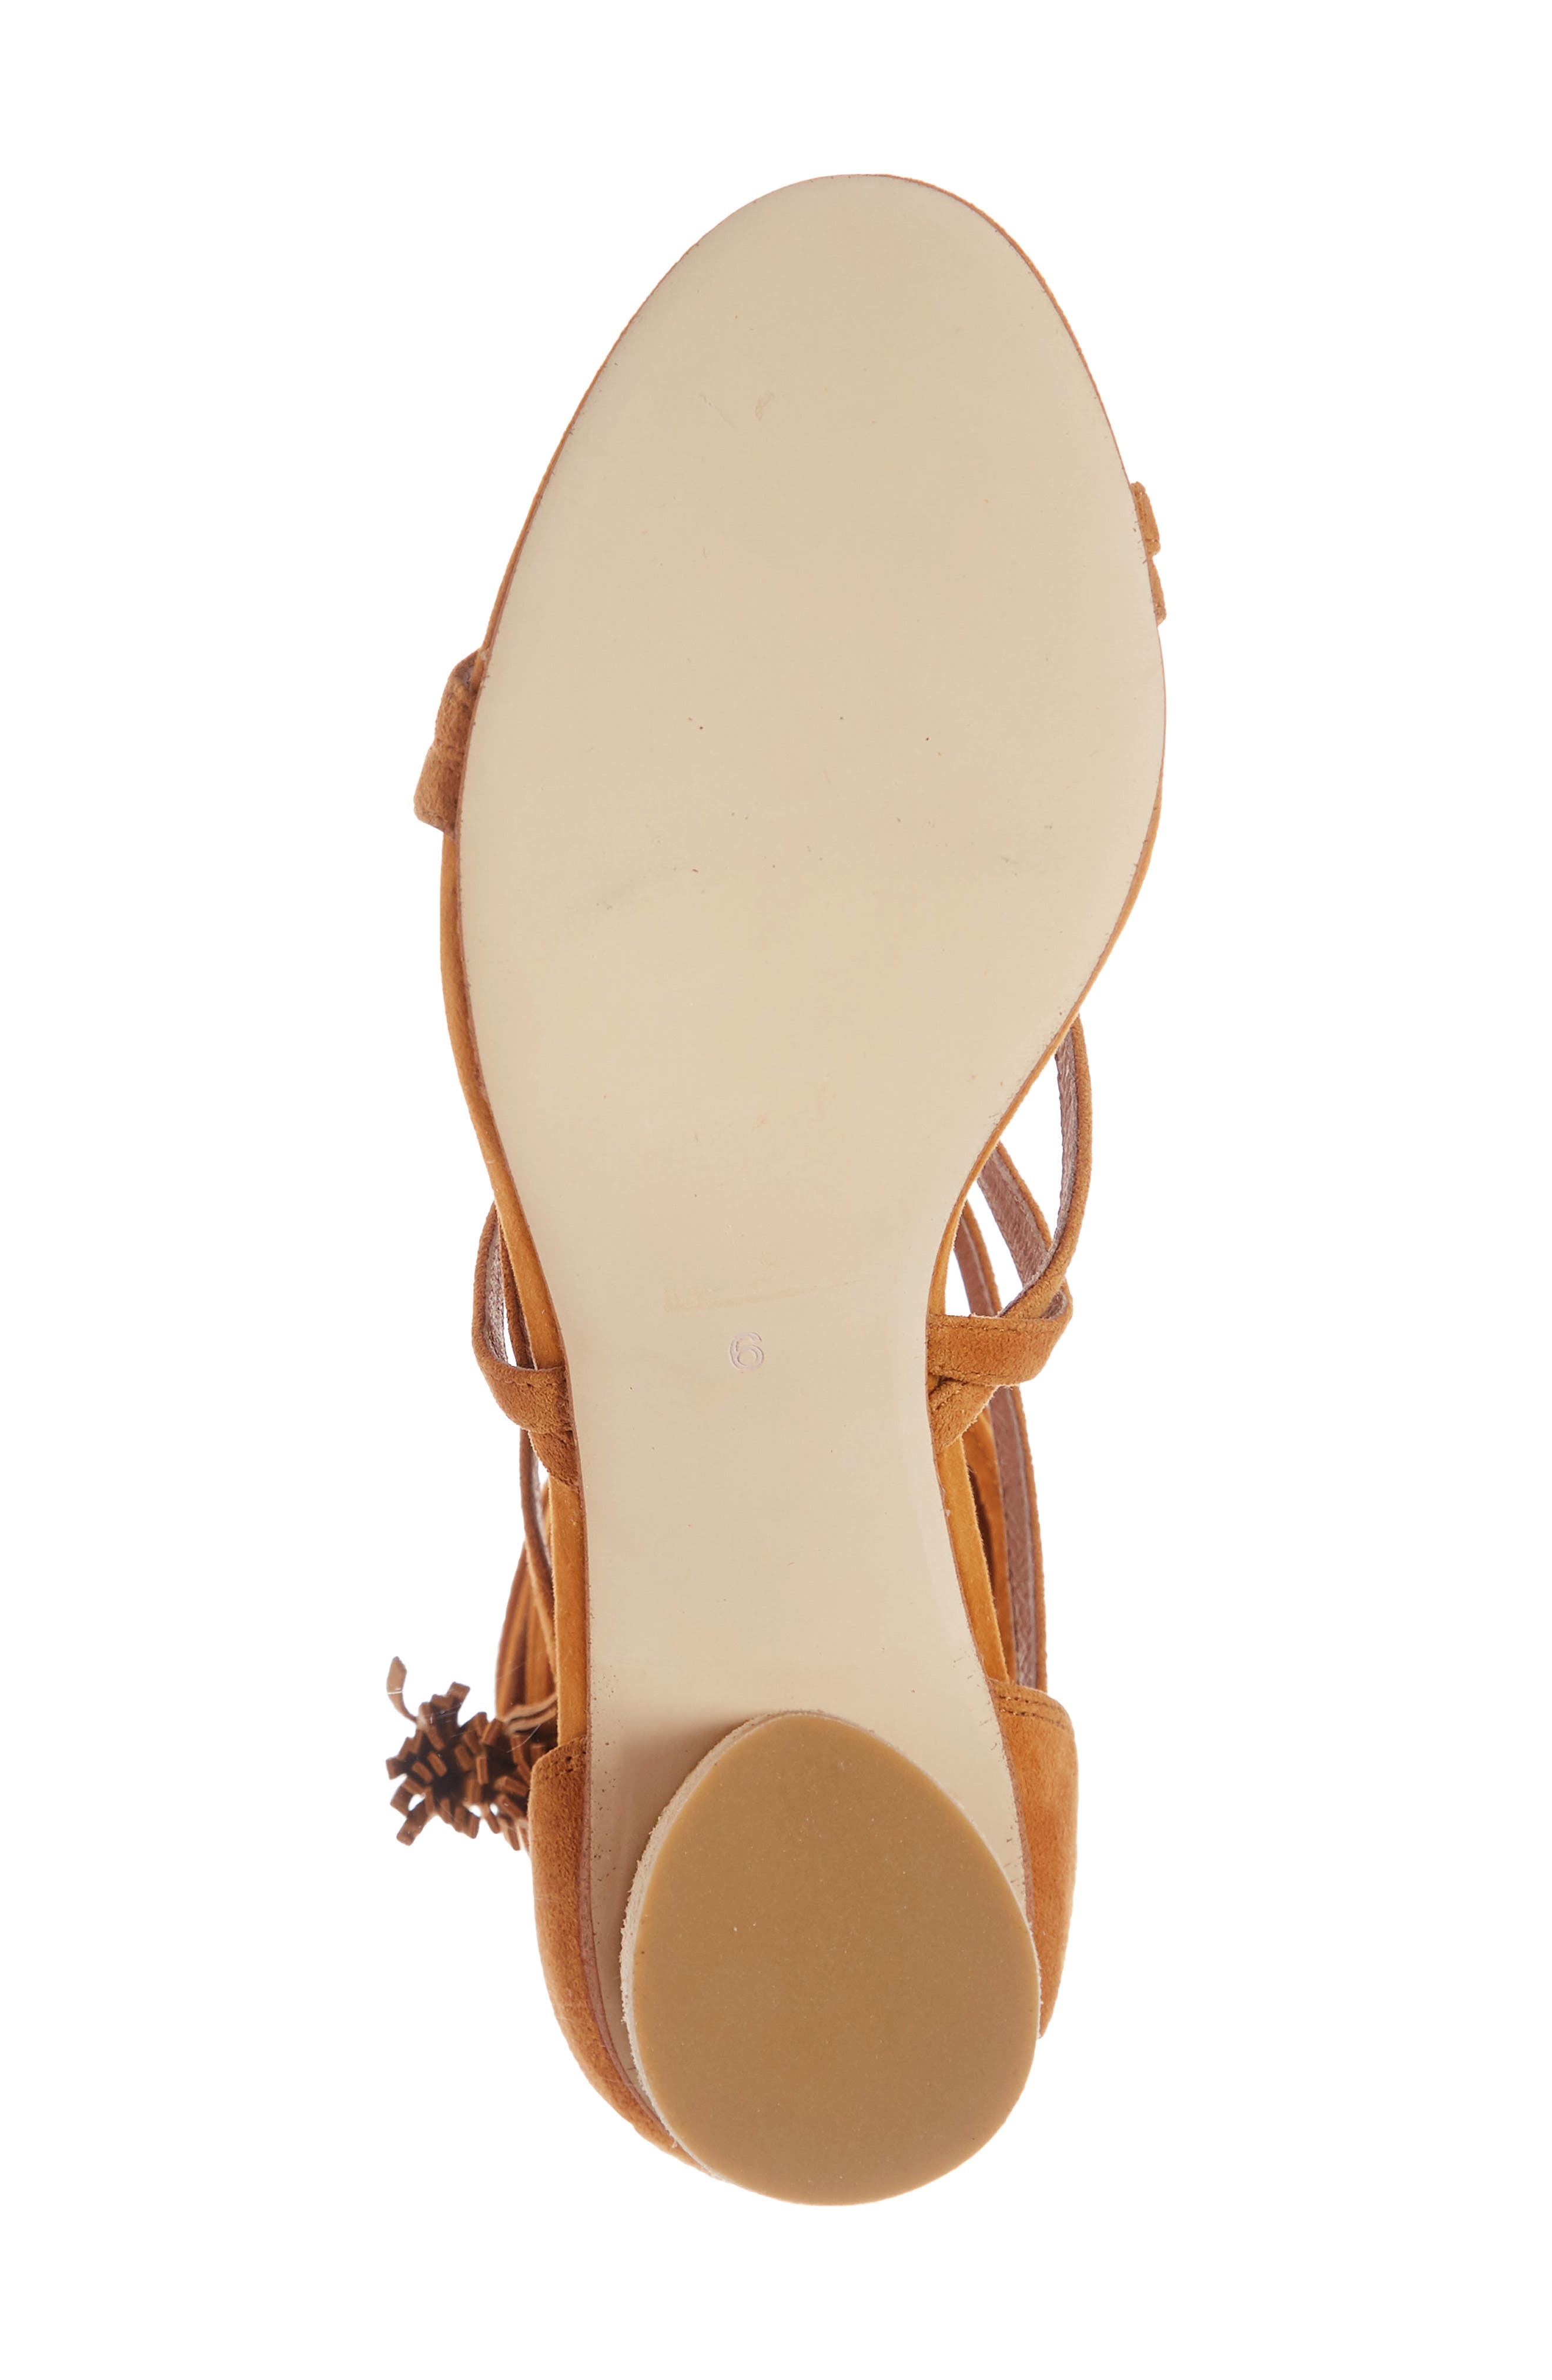 'Despina' Strappy Sandal,                             Alternate thumbnail 6, color,                             Mustard Suede